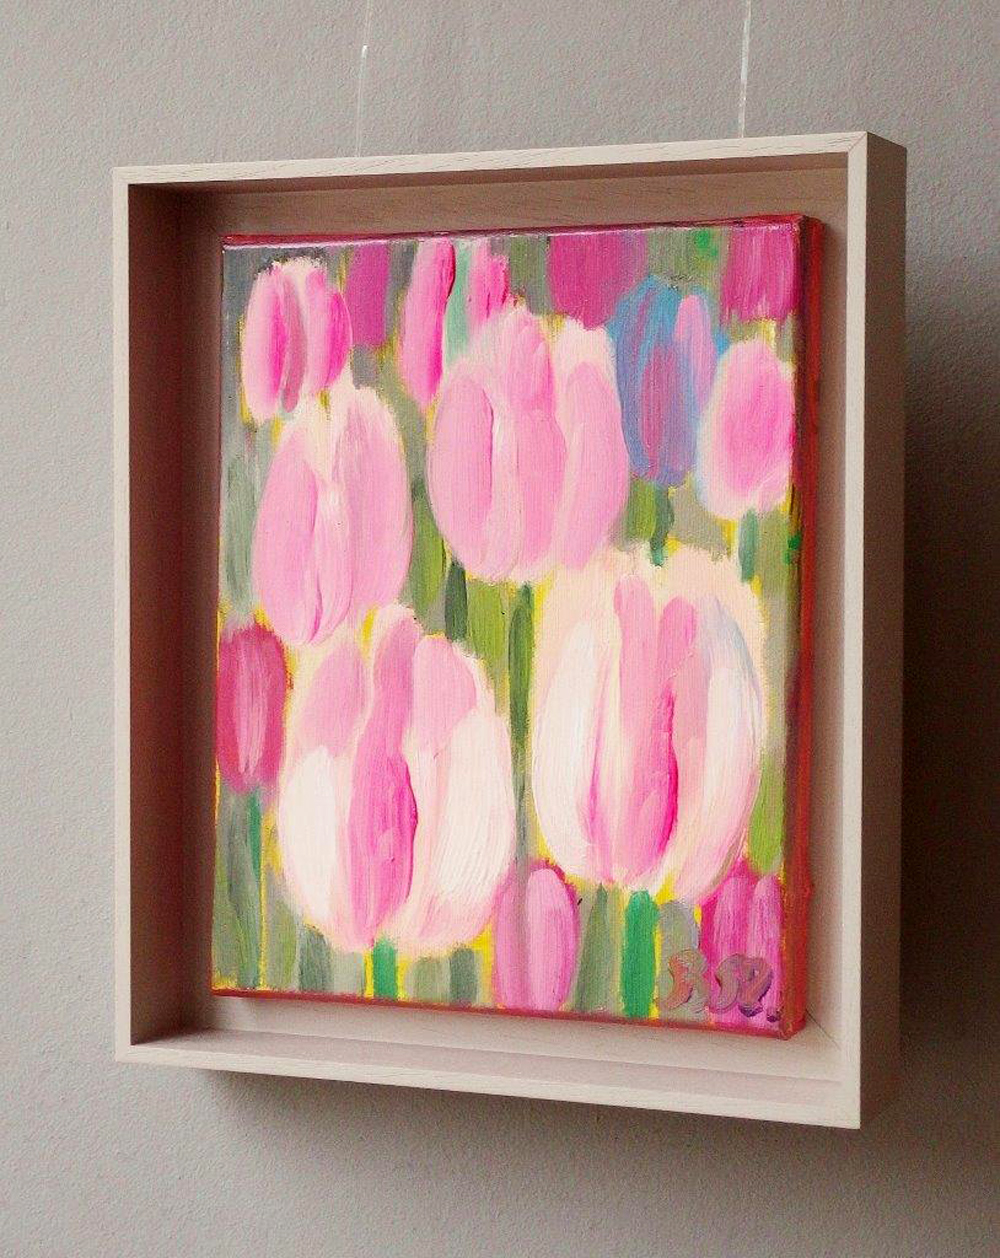 Beata Murawska : Pearly tulips